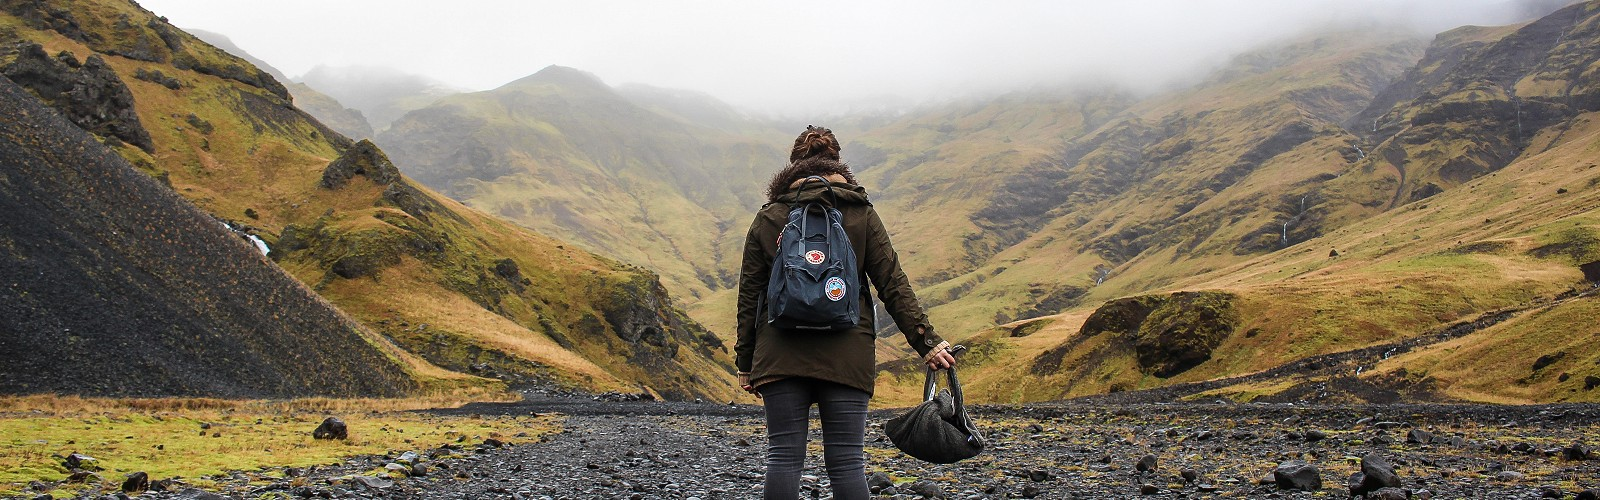 back view of person with rucksack standing on stoney track (image: Alexandre Godreau on unsplash)